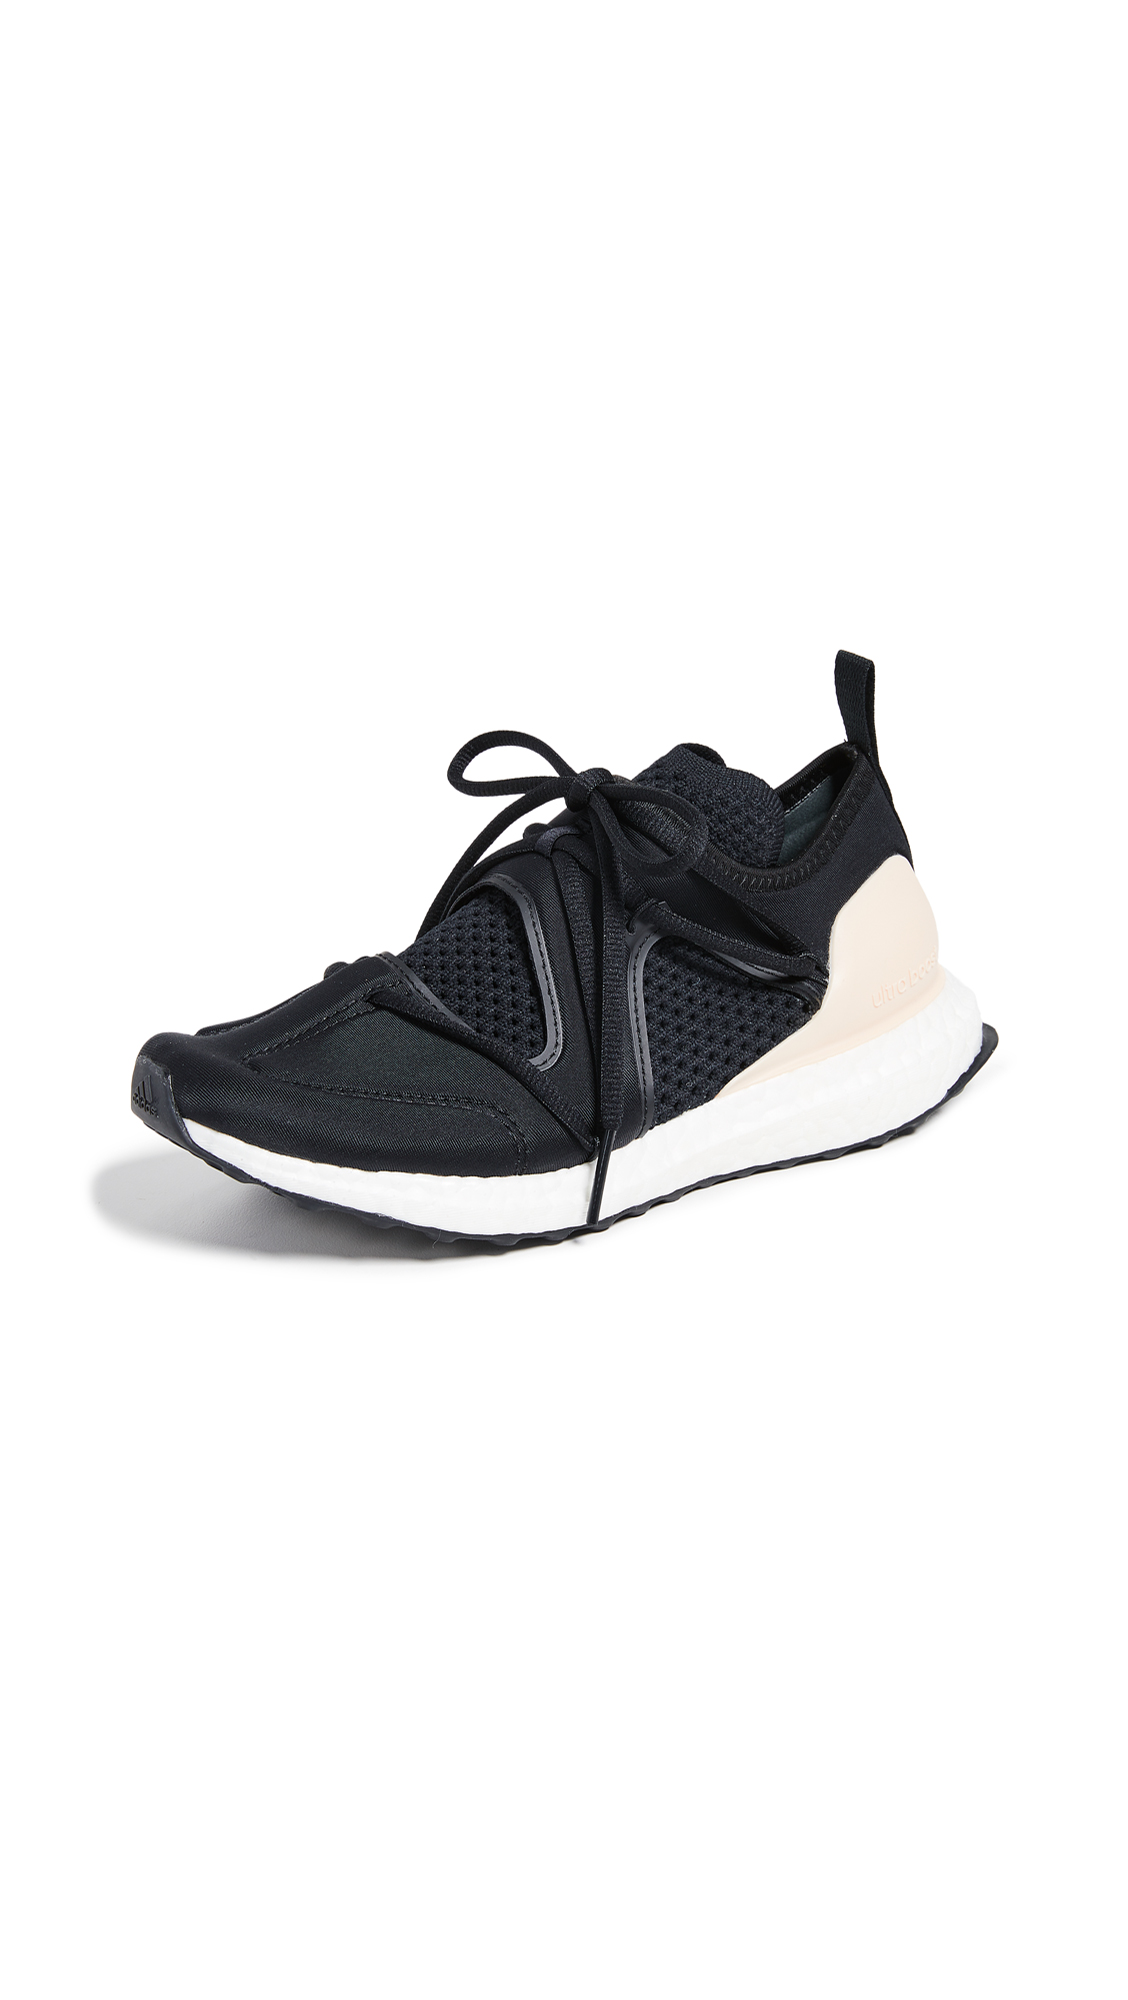 adidas by Stella McCartney UltraBOOST T Sneakers - Core Black/Soft Apricot